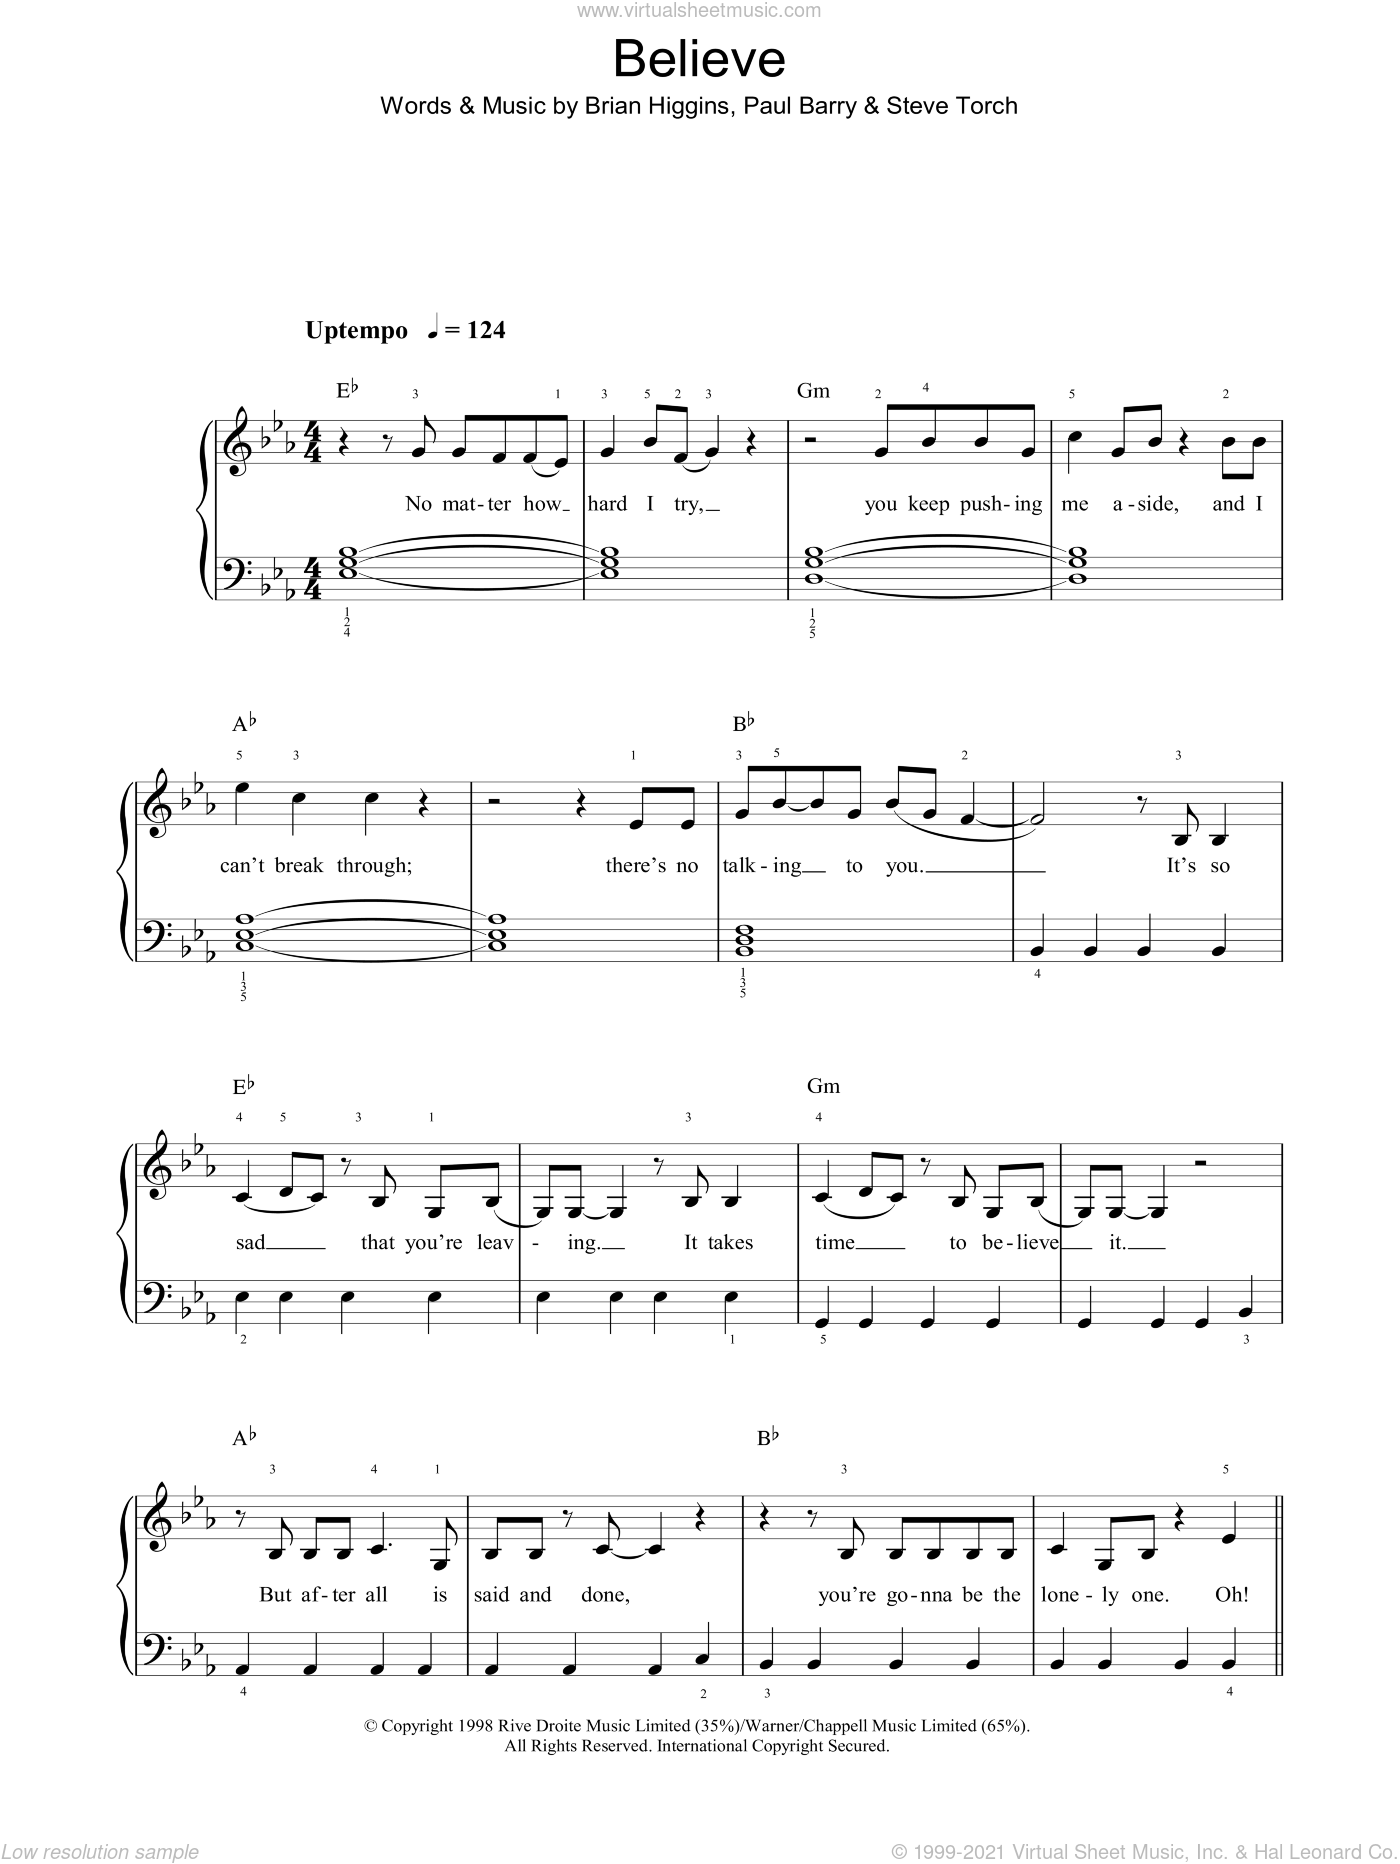 Believe sheet music for voice, piano or guitar by Steve Torch, Cher, Brian Higgins and Paul Barry. Score Image Preview.